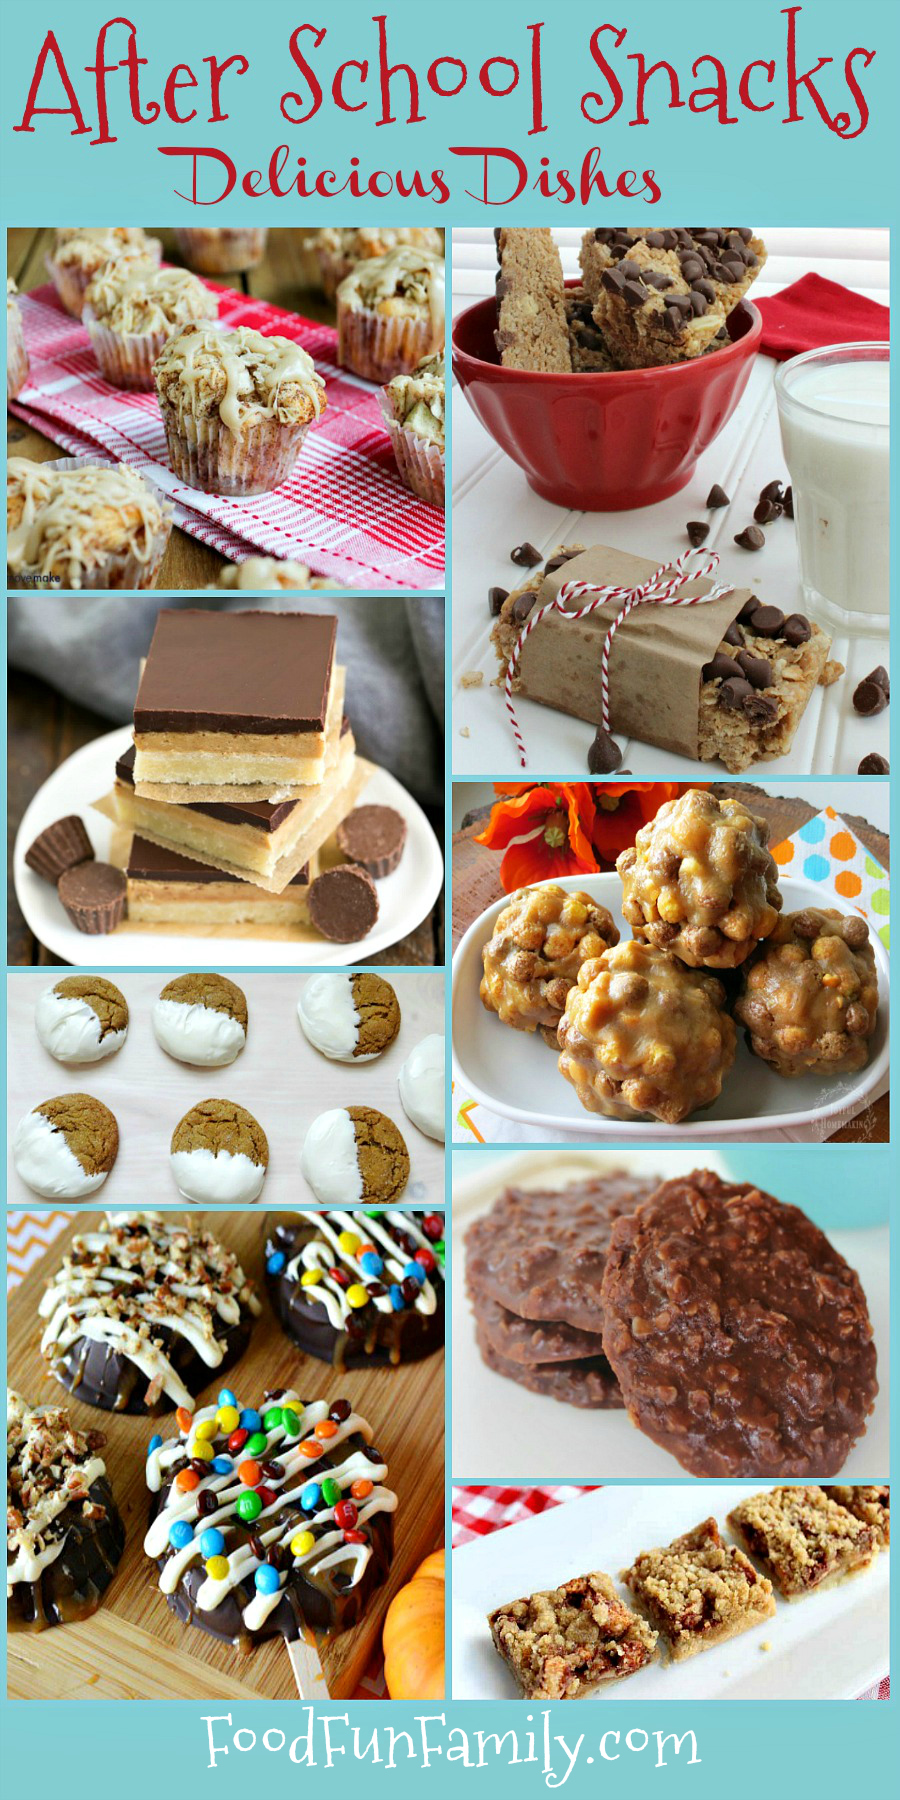 After School Snacks Delicious Dishes Recipe Party Host Favorites